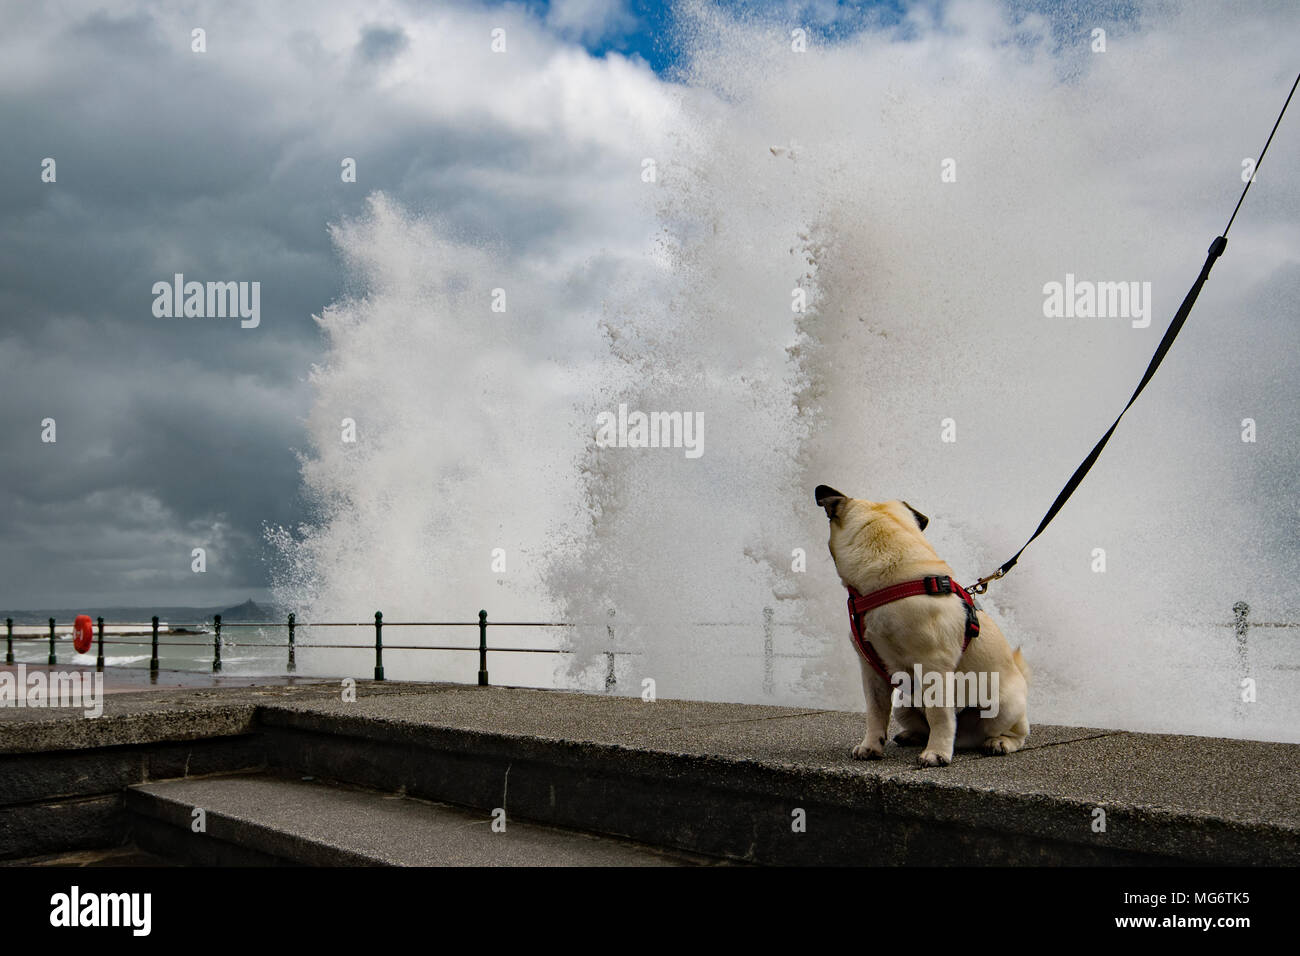 Penzance, Cornwall, UK. 27th April 2018. UK Weather. The rain eased off in the afternoon in Cornwall, however strong winds were pushing in big waves onto the seafront at Penzance - giving Titan the Pug a brief shower. Credit: Simon Maycock/Alamy Live News - Stock Image